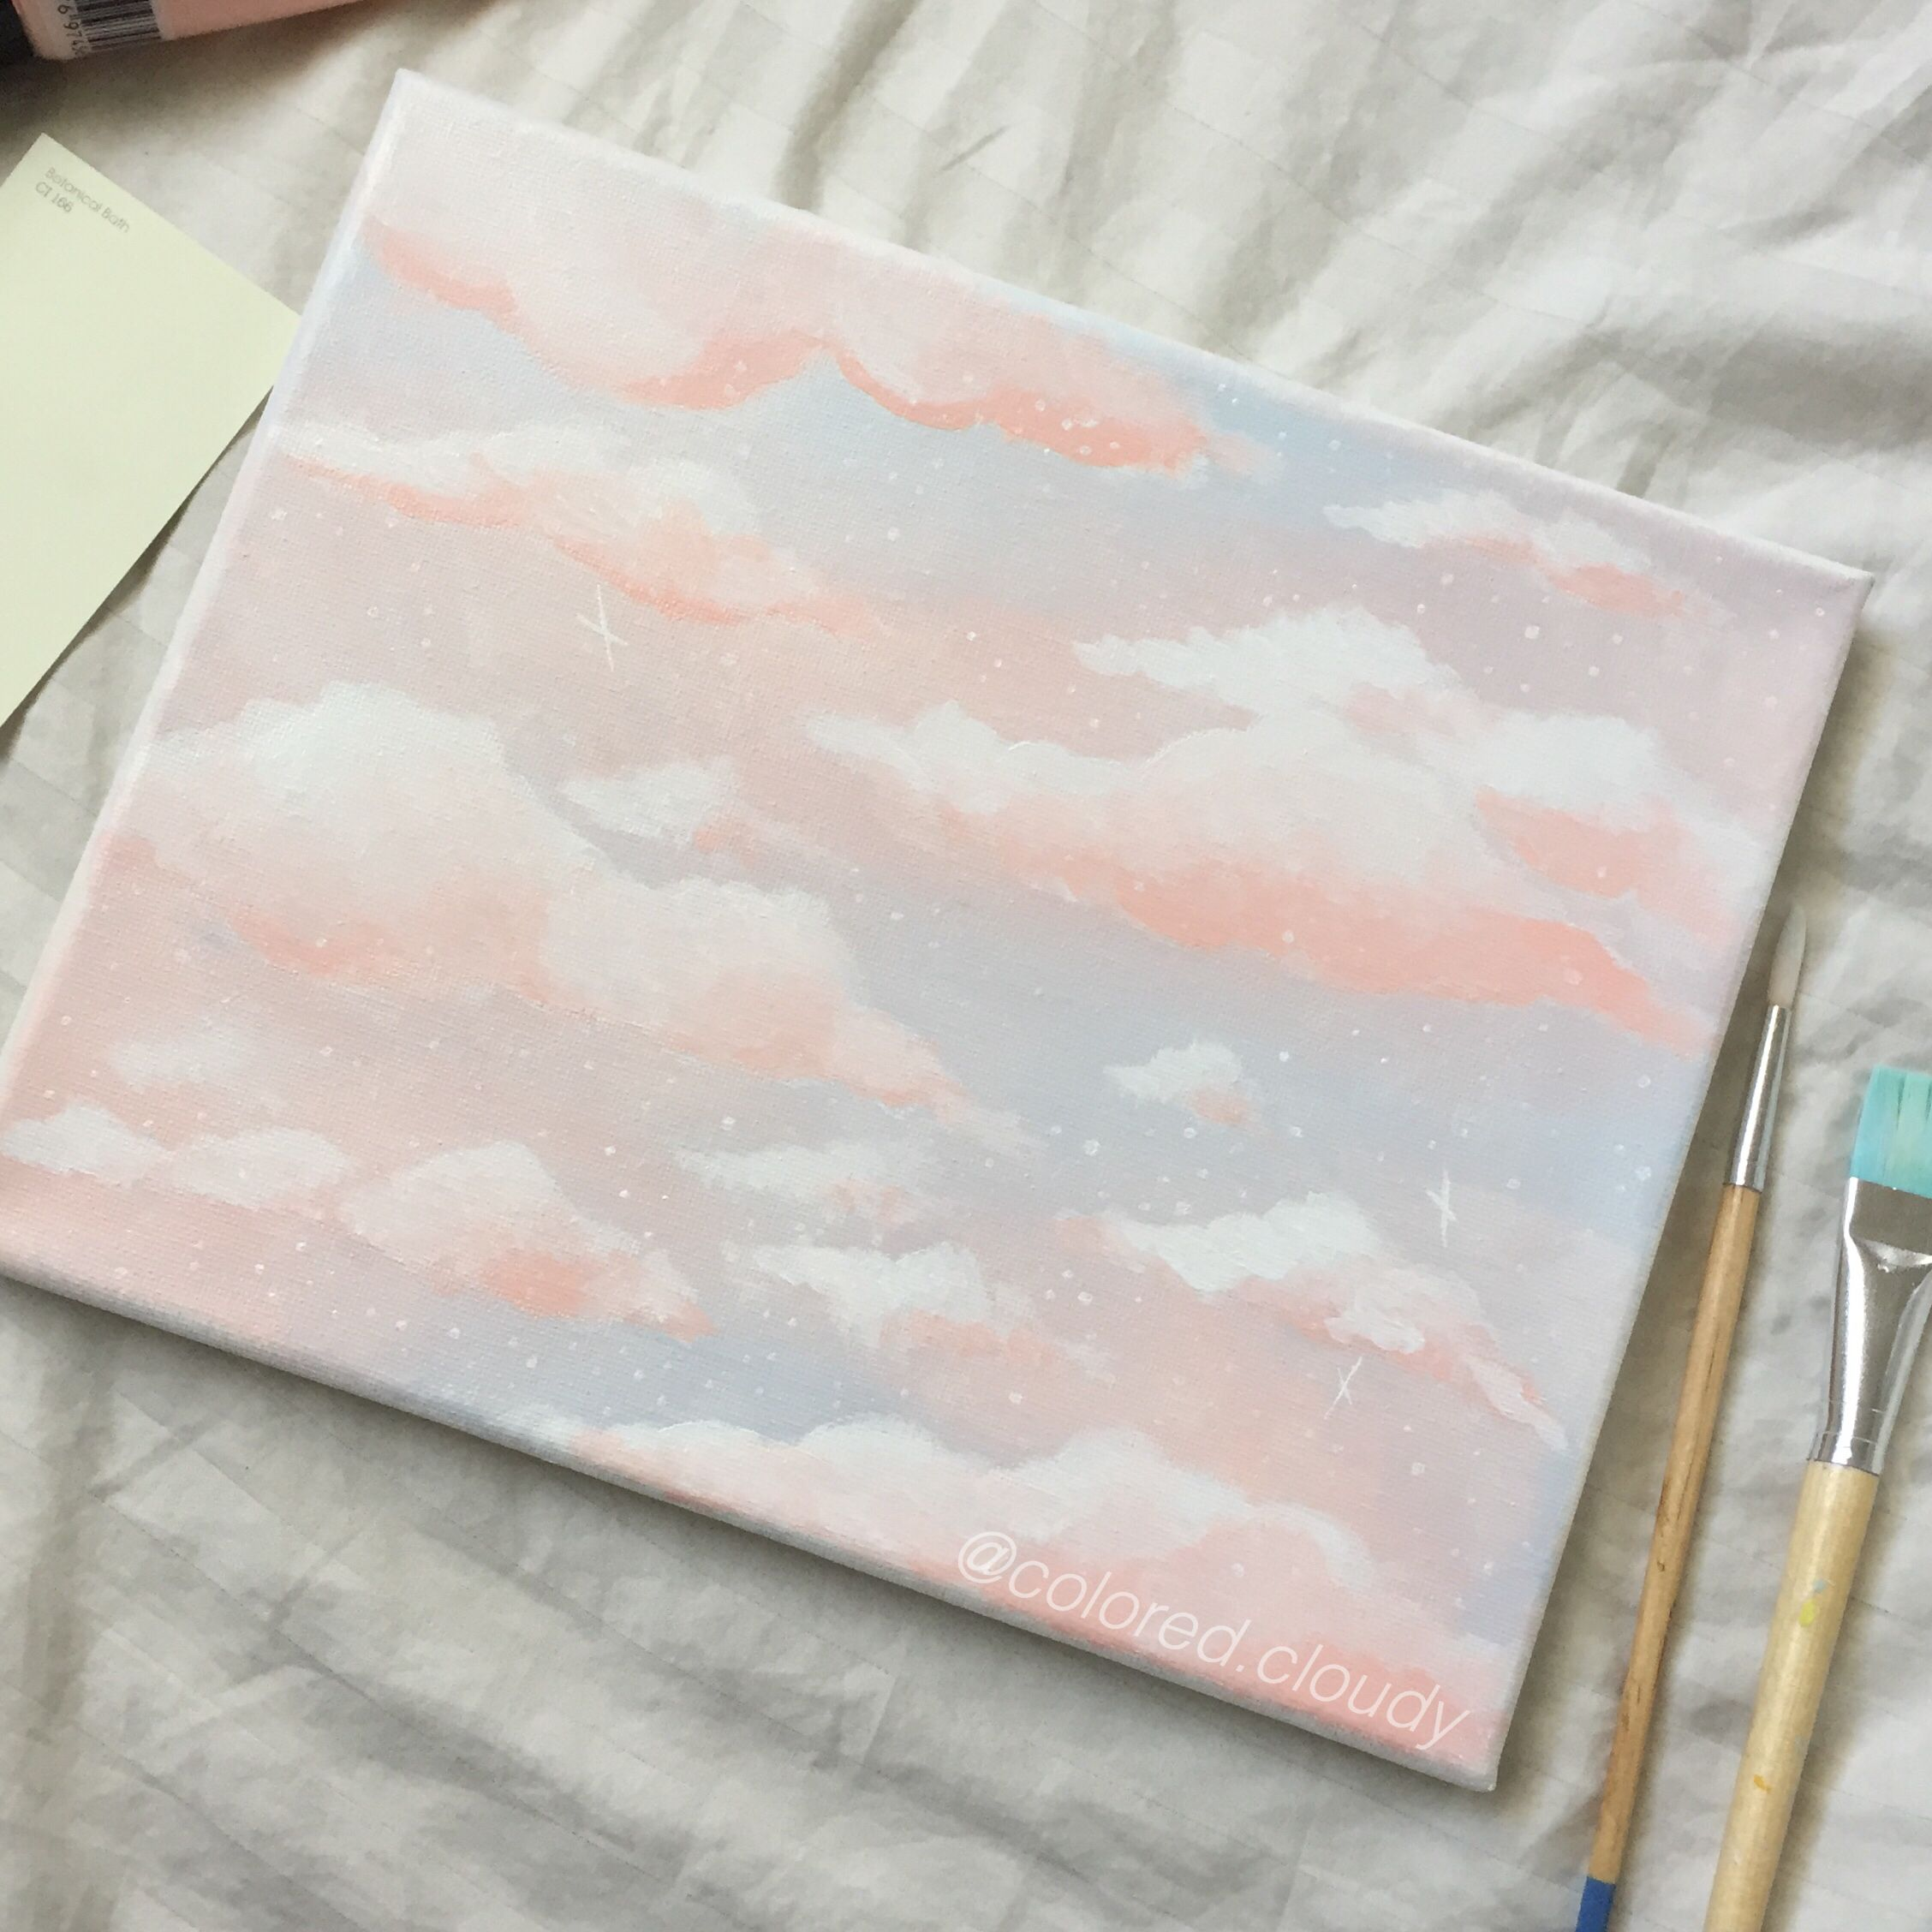 Pin By 𝔸𝕫𝕣𝕚𝕖𝕝 𝕋𝕤𝕦𝕜𝕚𝕞𝕚 On A R T Sky Art Painting